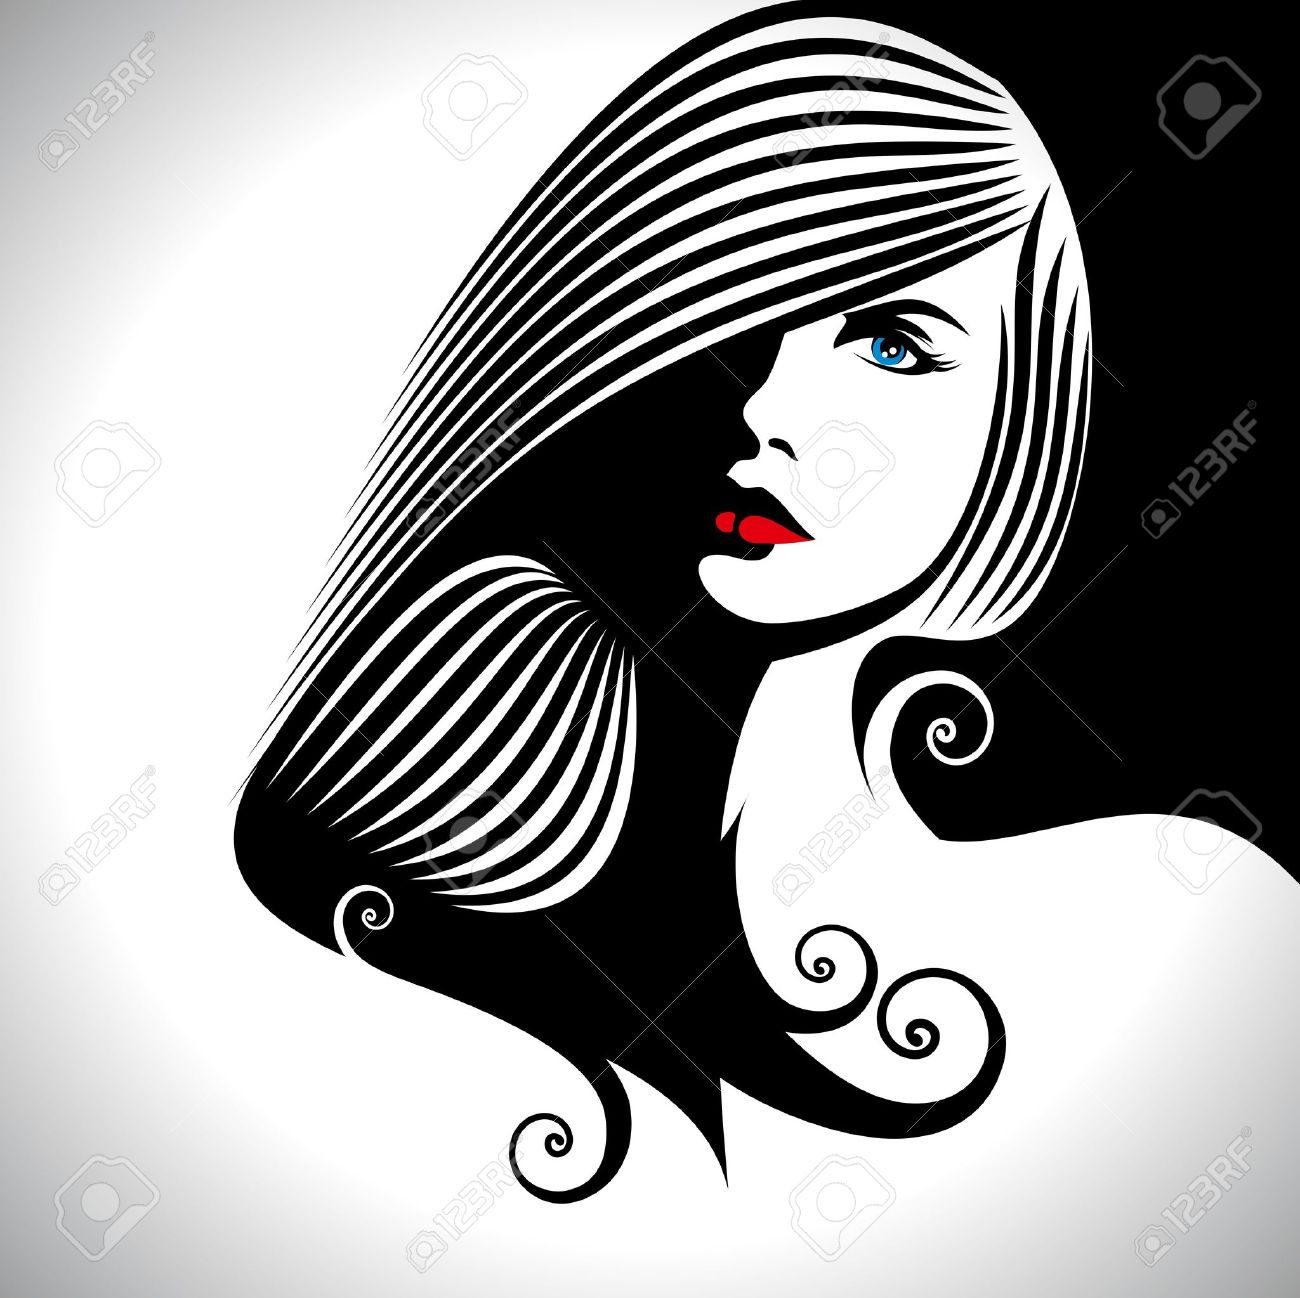 27364 Hair Salon Cliparts Stock Vector And Royalty Free